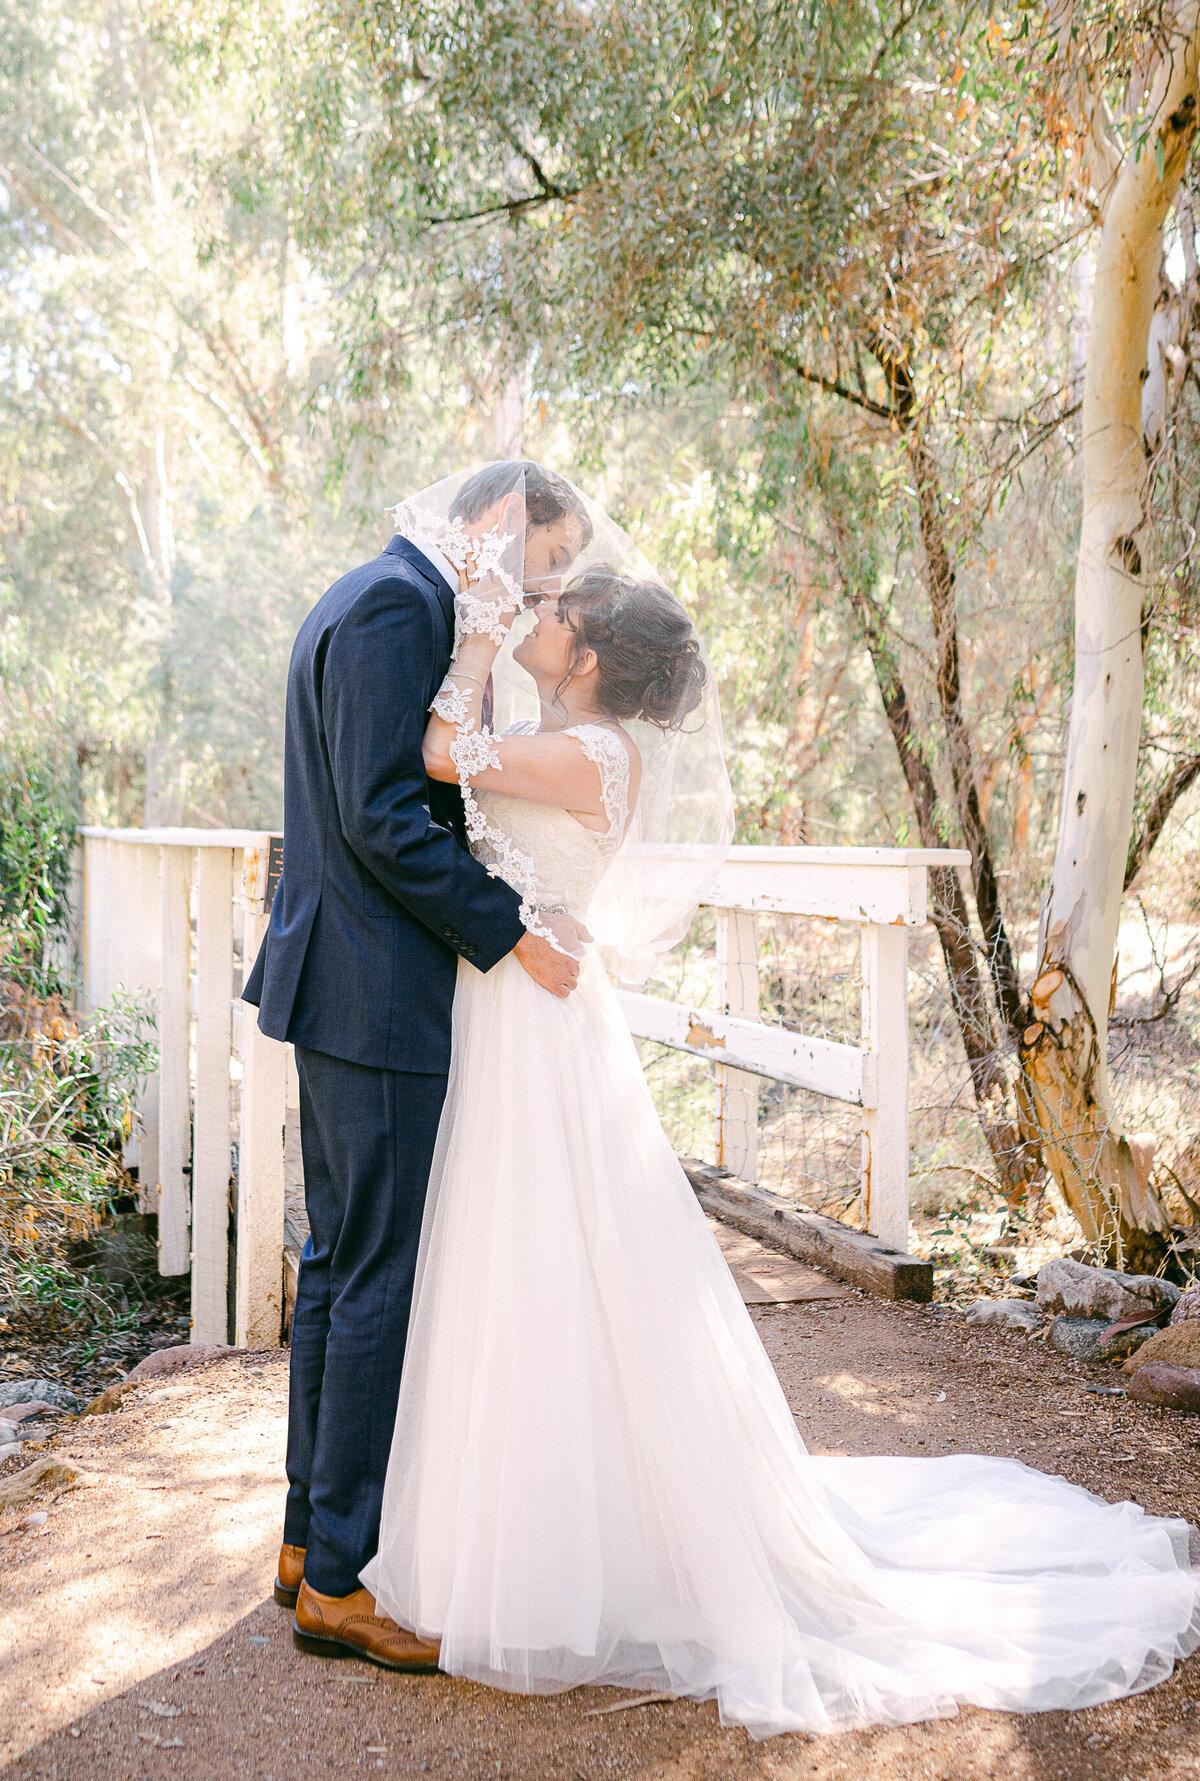 Boyce Thompson Arboretum Wedding - Robbie And Jen - Phoenix Wedding Photographer - Atlas Rose Photography AZ03